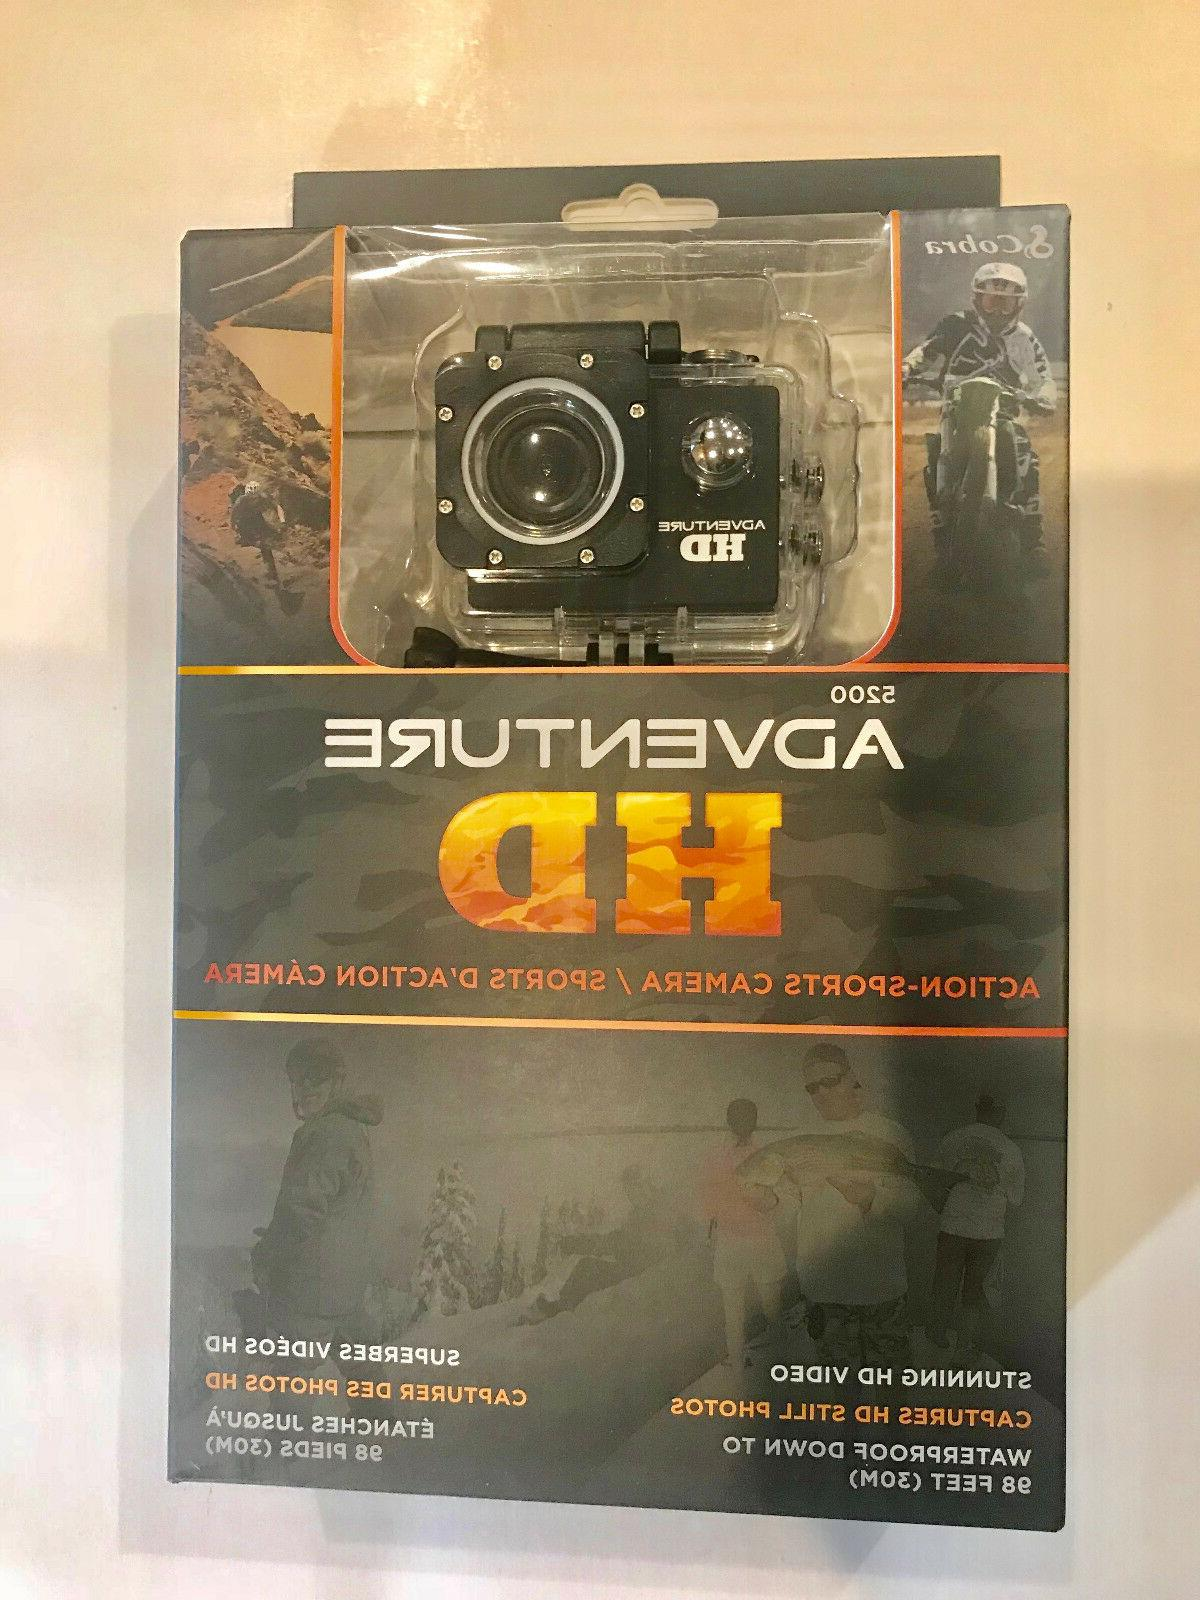 Cobra Adventure HD 1.3 MP Action Camera ‑ 1080p #C60900380